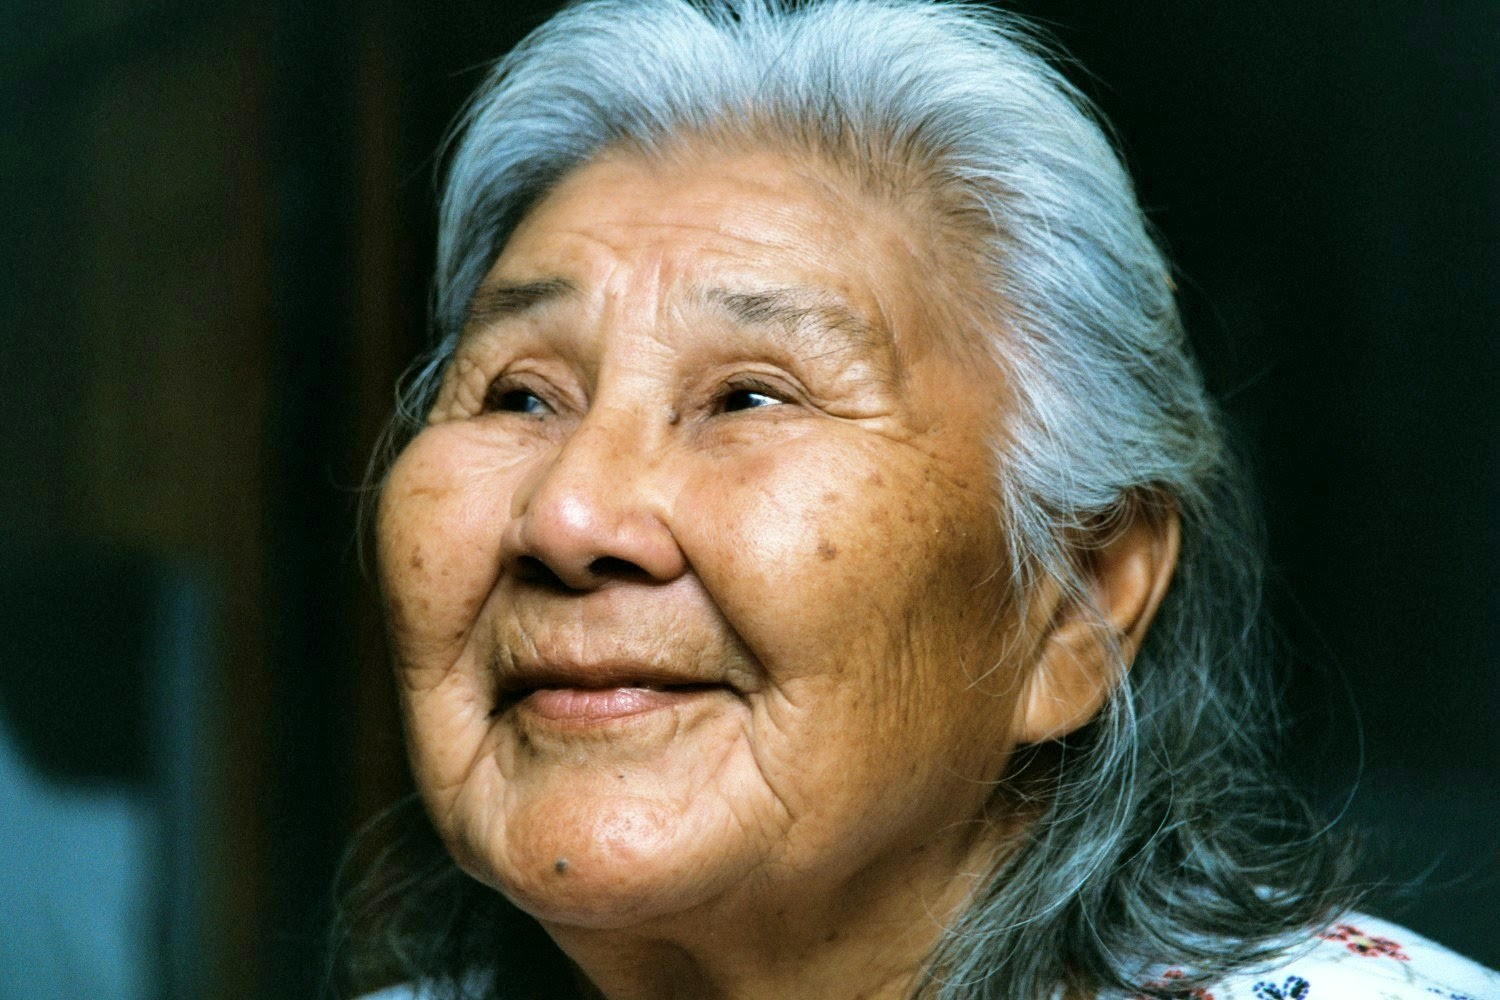 Photo of Alaska Native activist Katie John